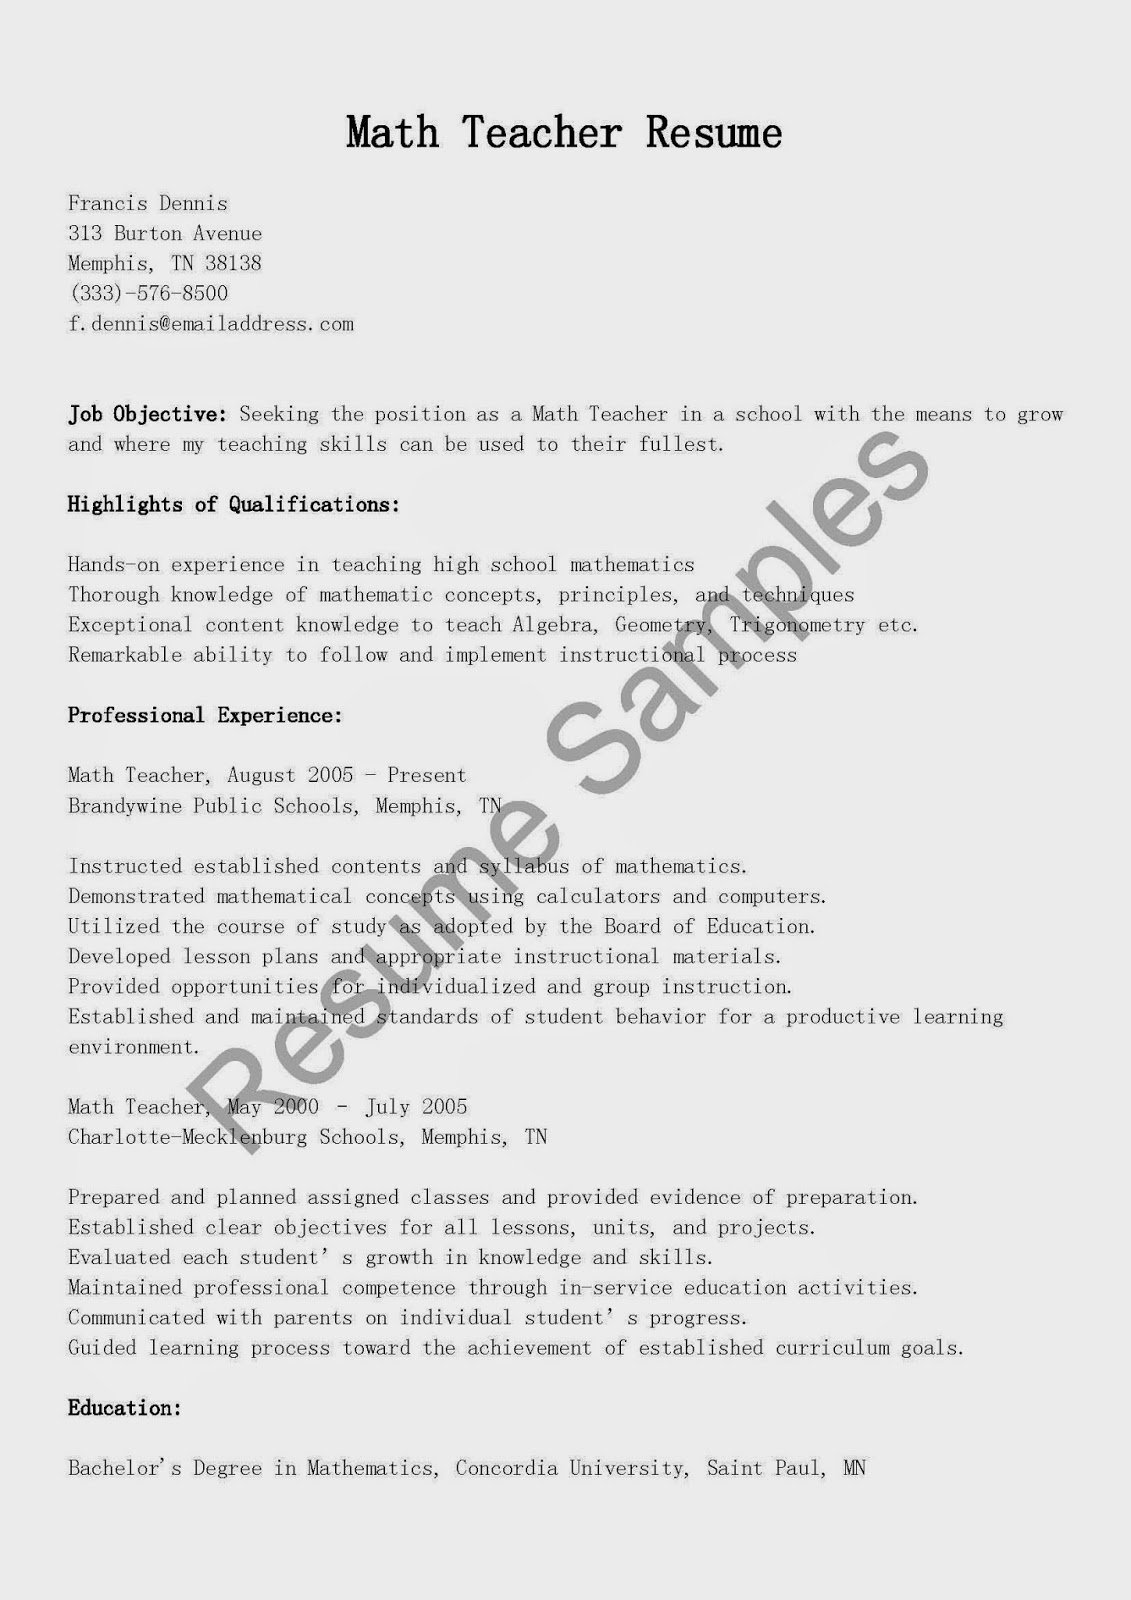 education resume objectives cover letter resume examples education resume objectives teacher resume objective statement for teachers resume samples math teacher resume sample